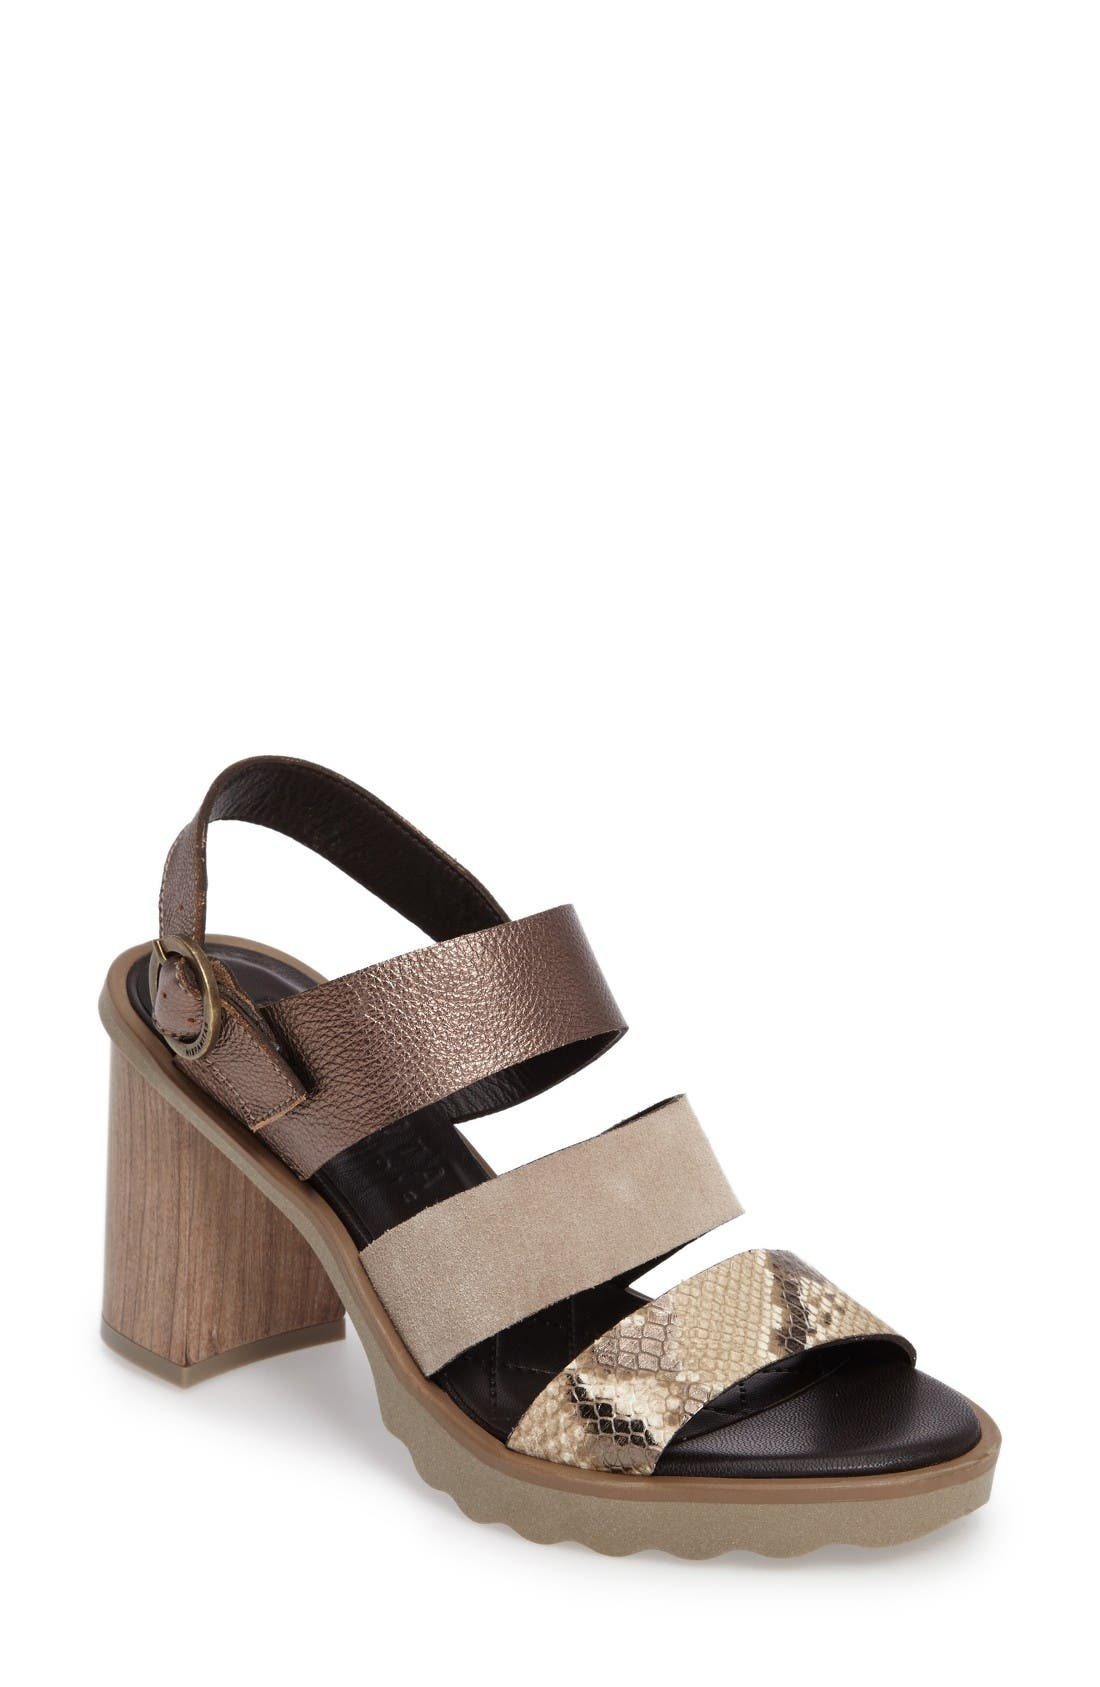 Greer Strappy Slingback Sandal,                         Main,                         color, Narabi Natural Leather